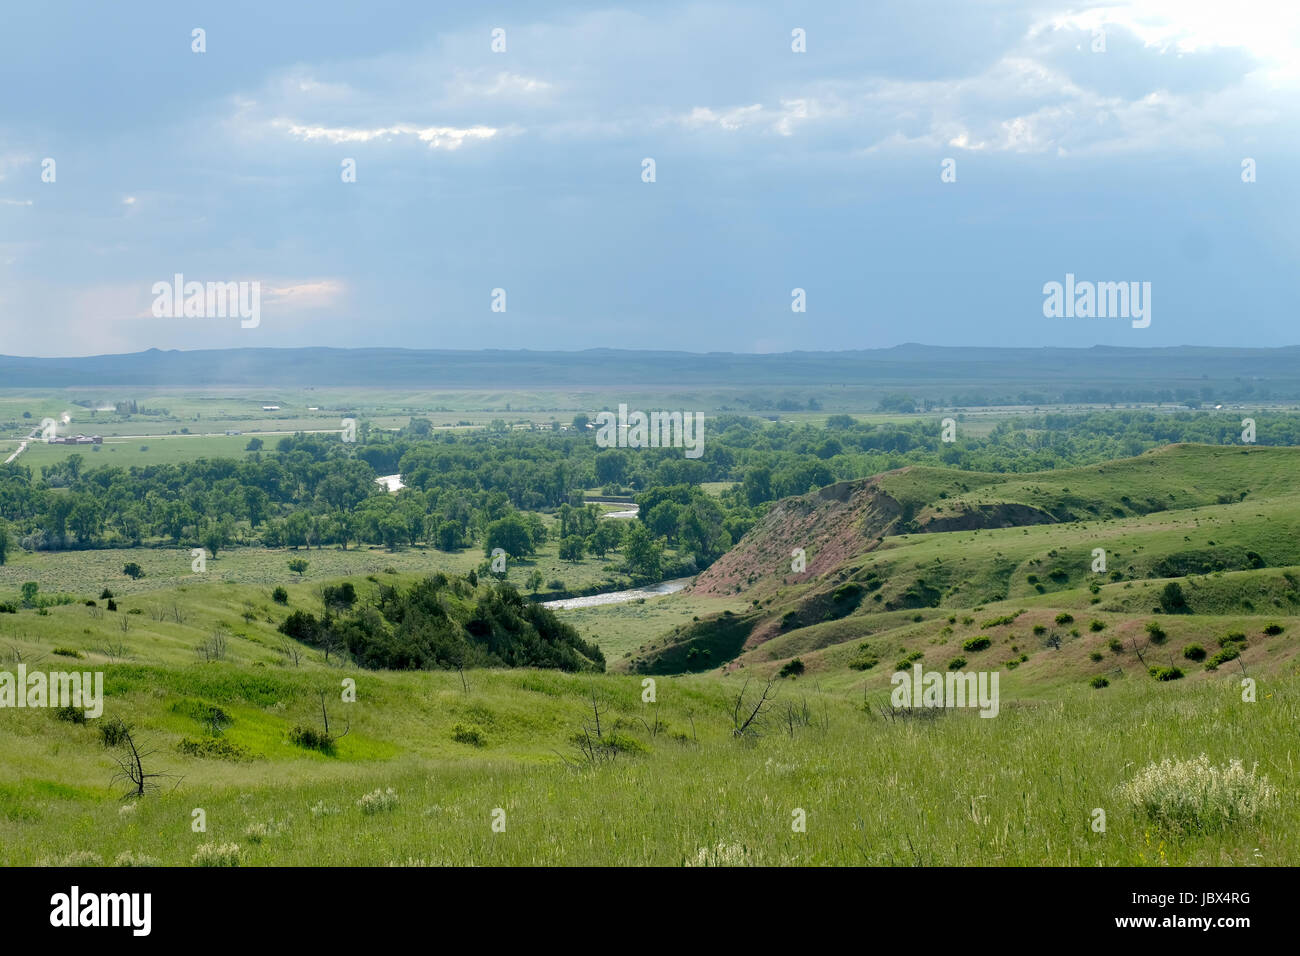 A view looking down on the Bighorn river valley where the native indian camp was situated in the lead up to the Battle of the Little Bighorn in 1876 Stock Photo